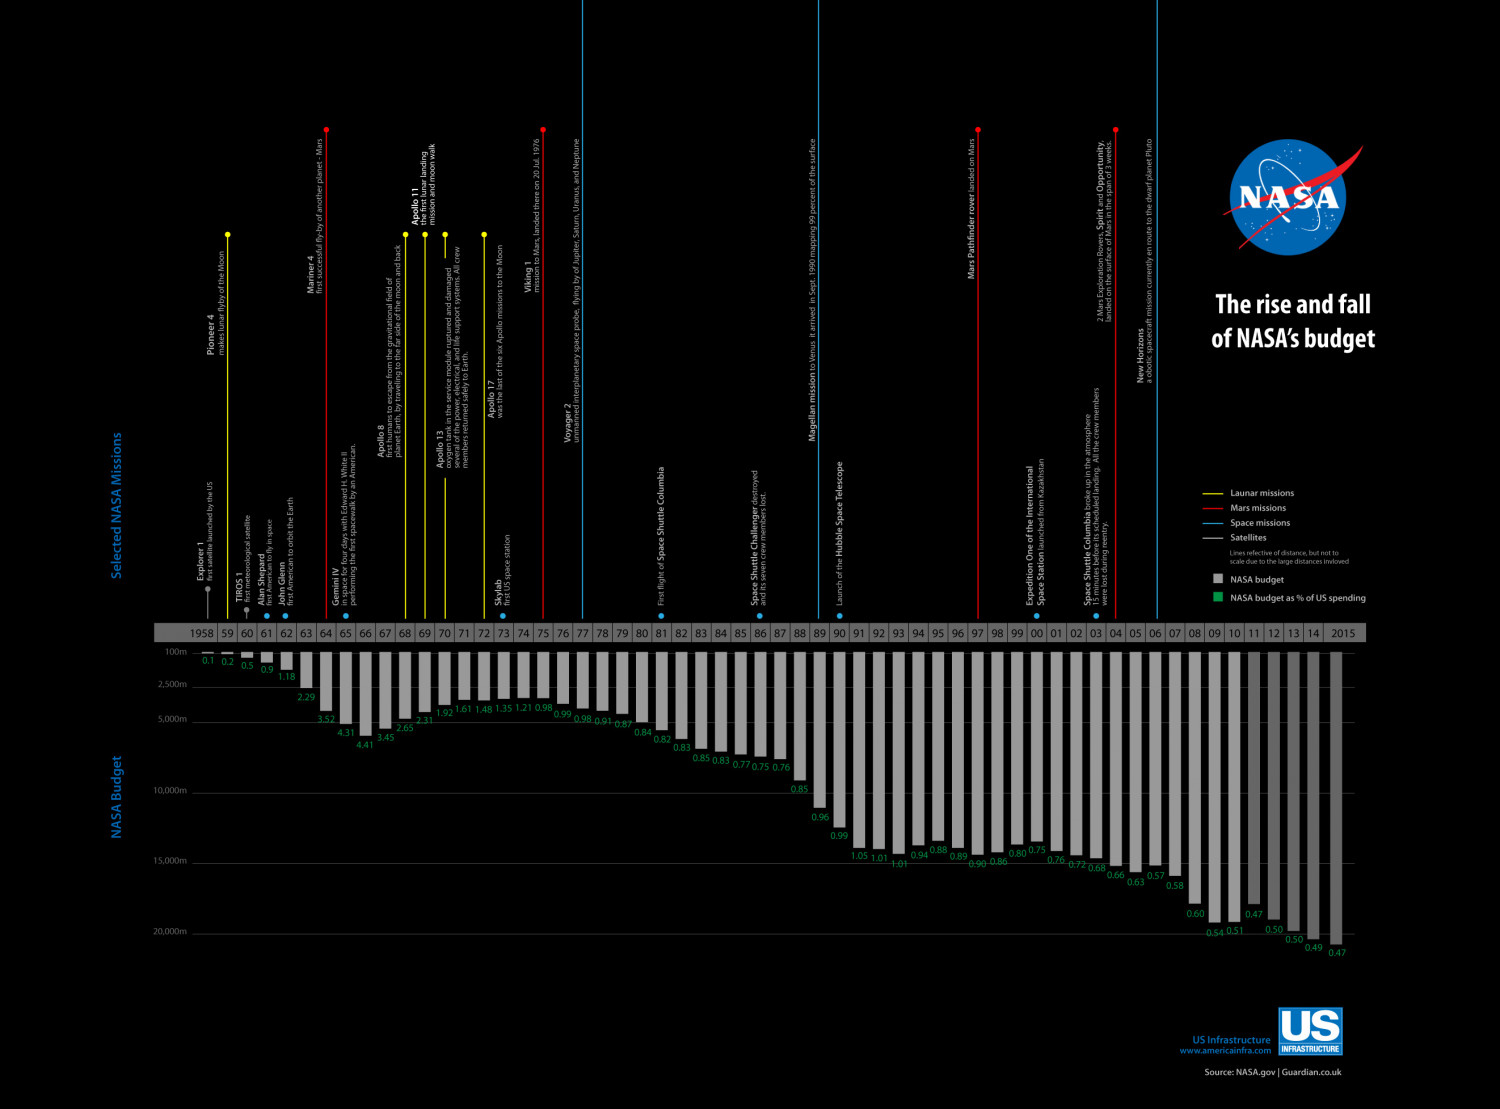 The rise and fall of NASA's budget Infographic